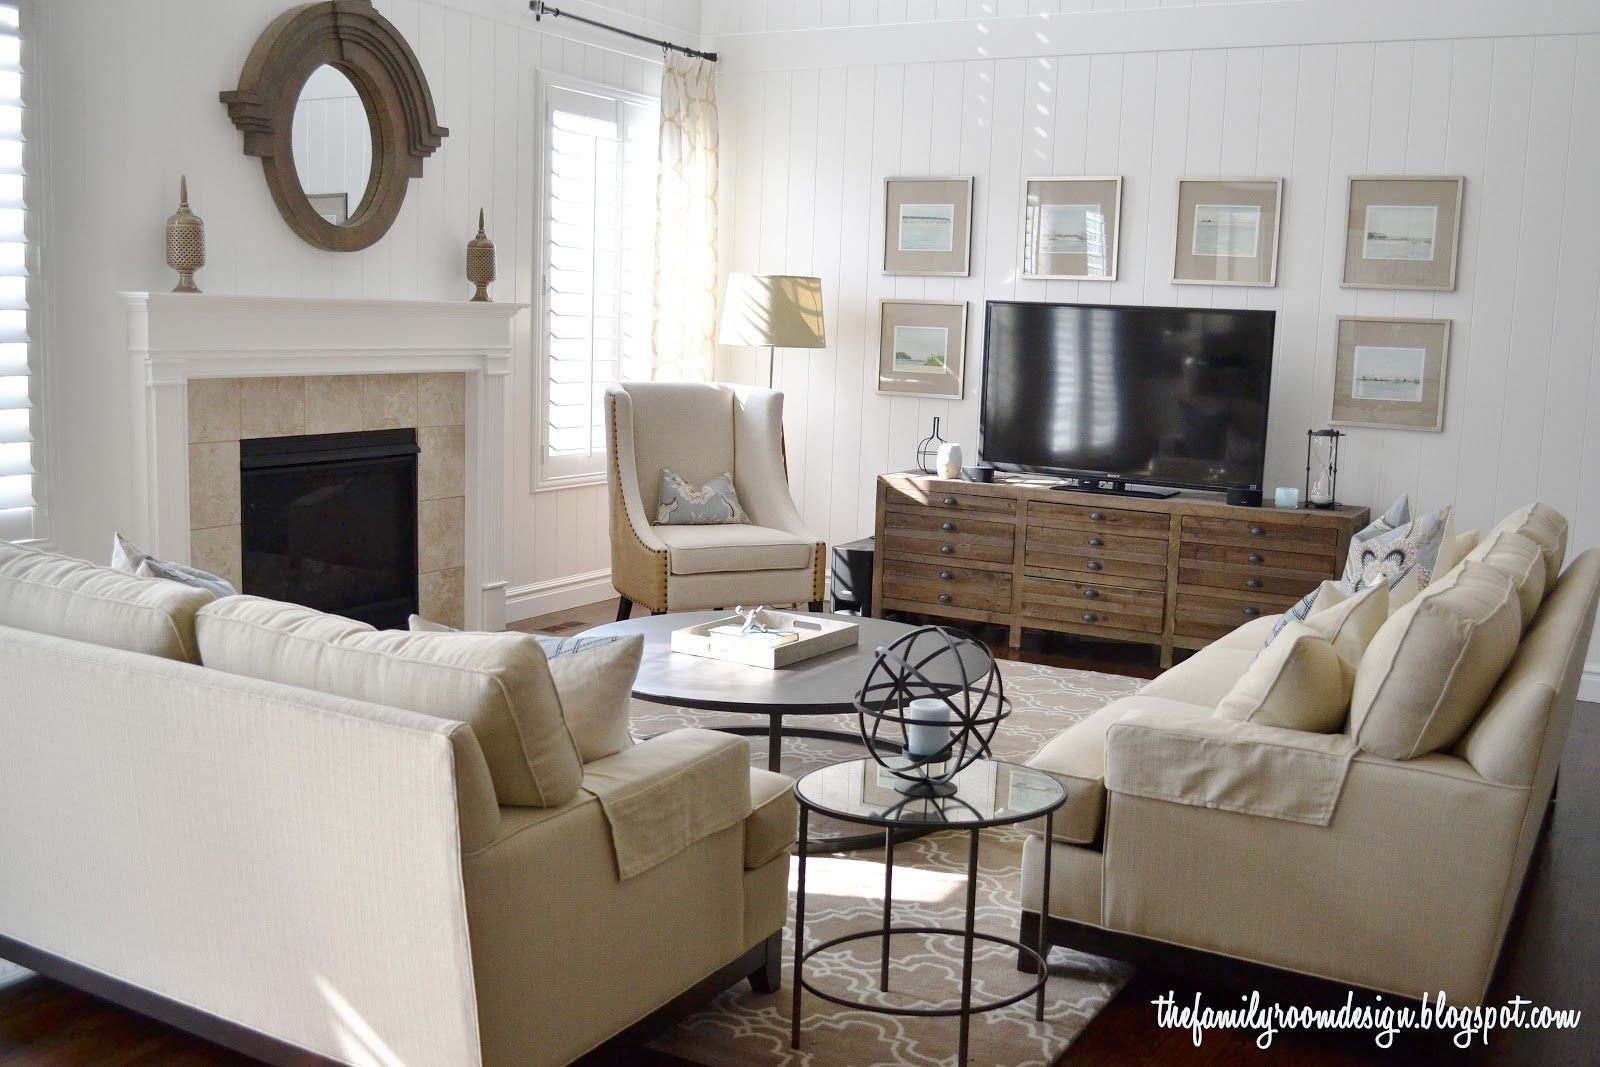 Small Living Room With Sofa And 2 Chairs Brown Escape Walkthrough The Family I Would Like These Two Couches In A Different Color Layout